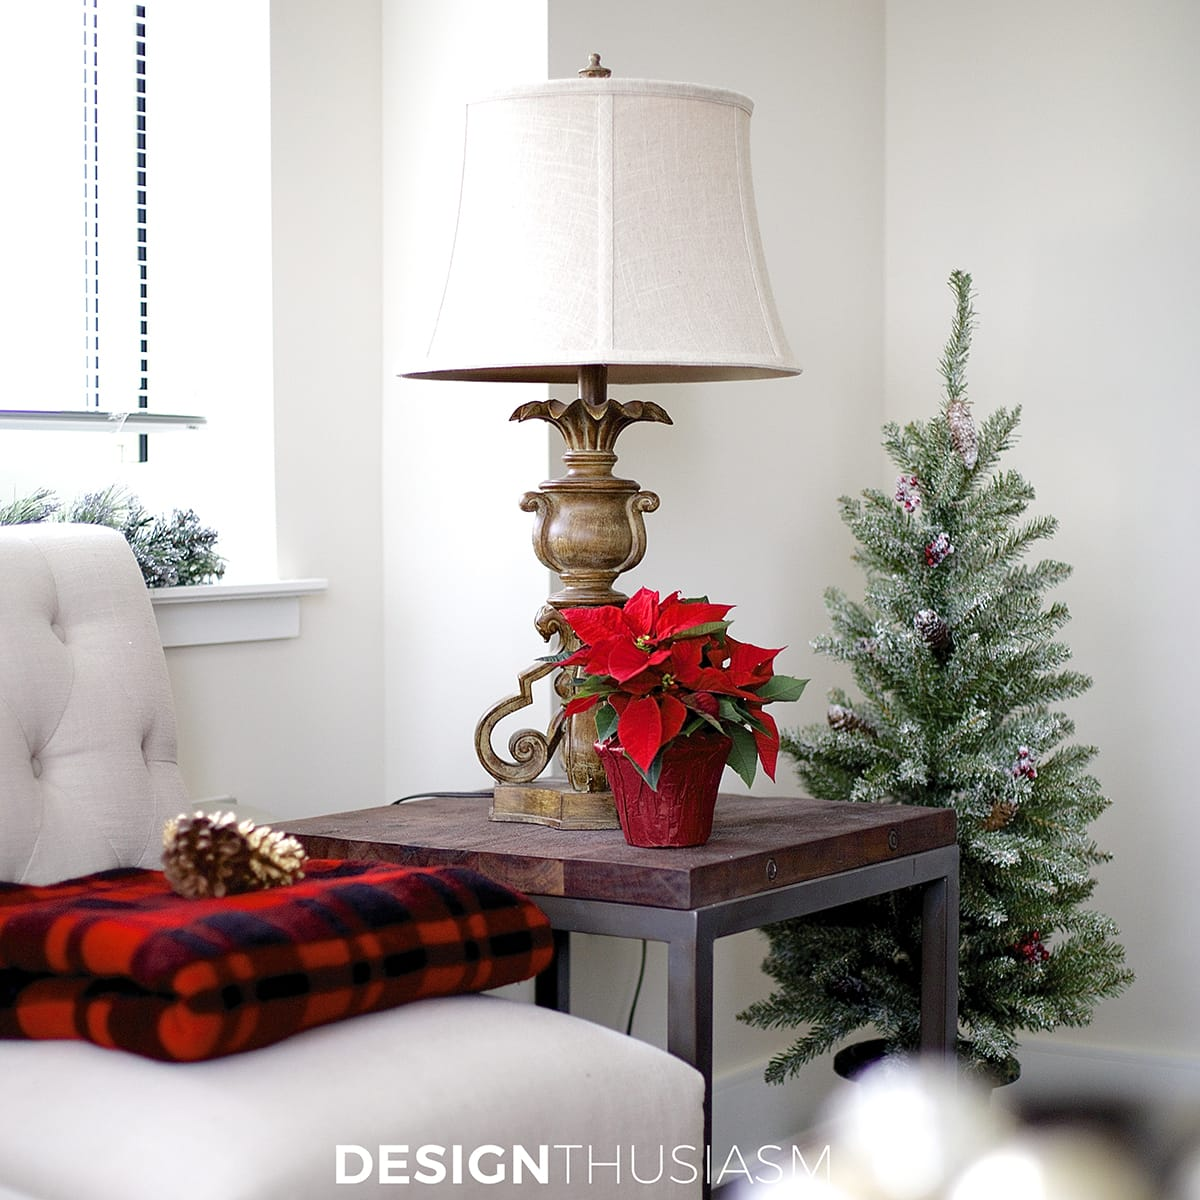 holiday decorating ideas for a small apartment designthusiasmcom